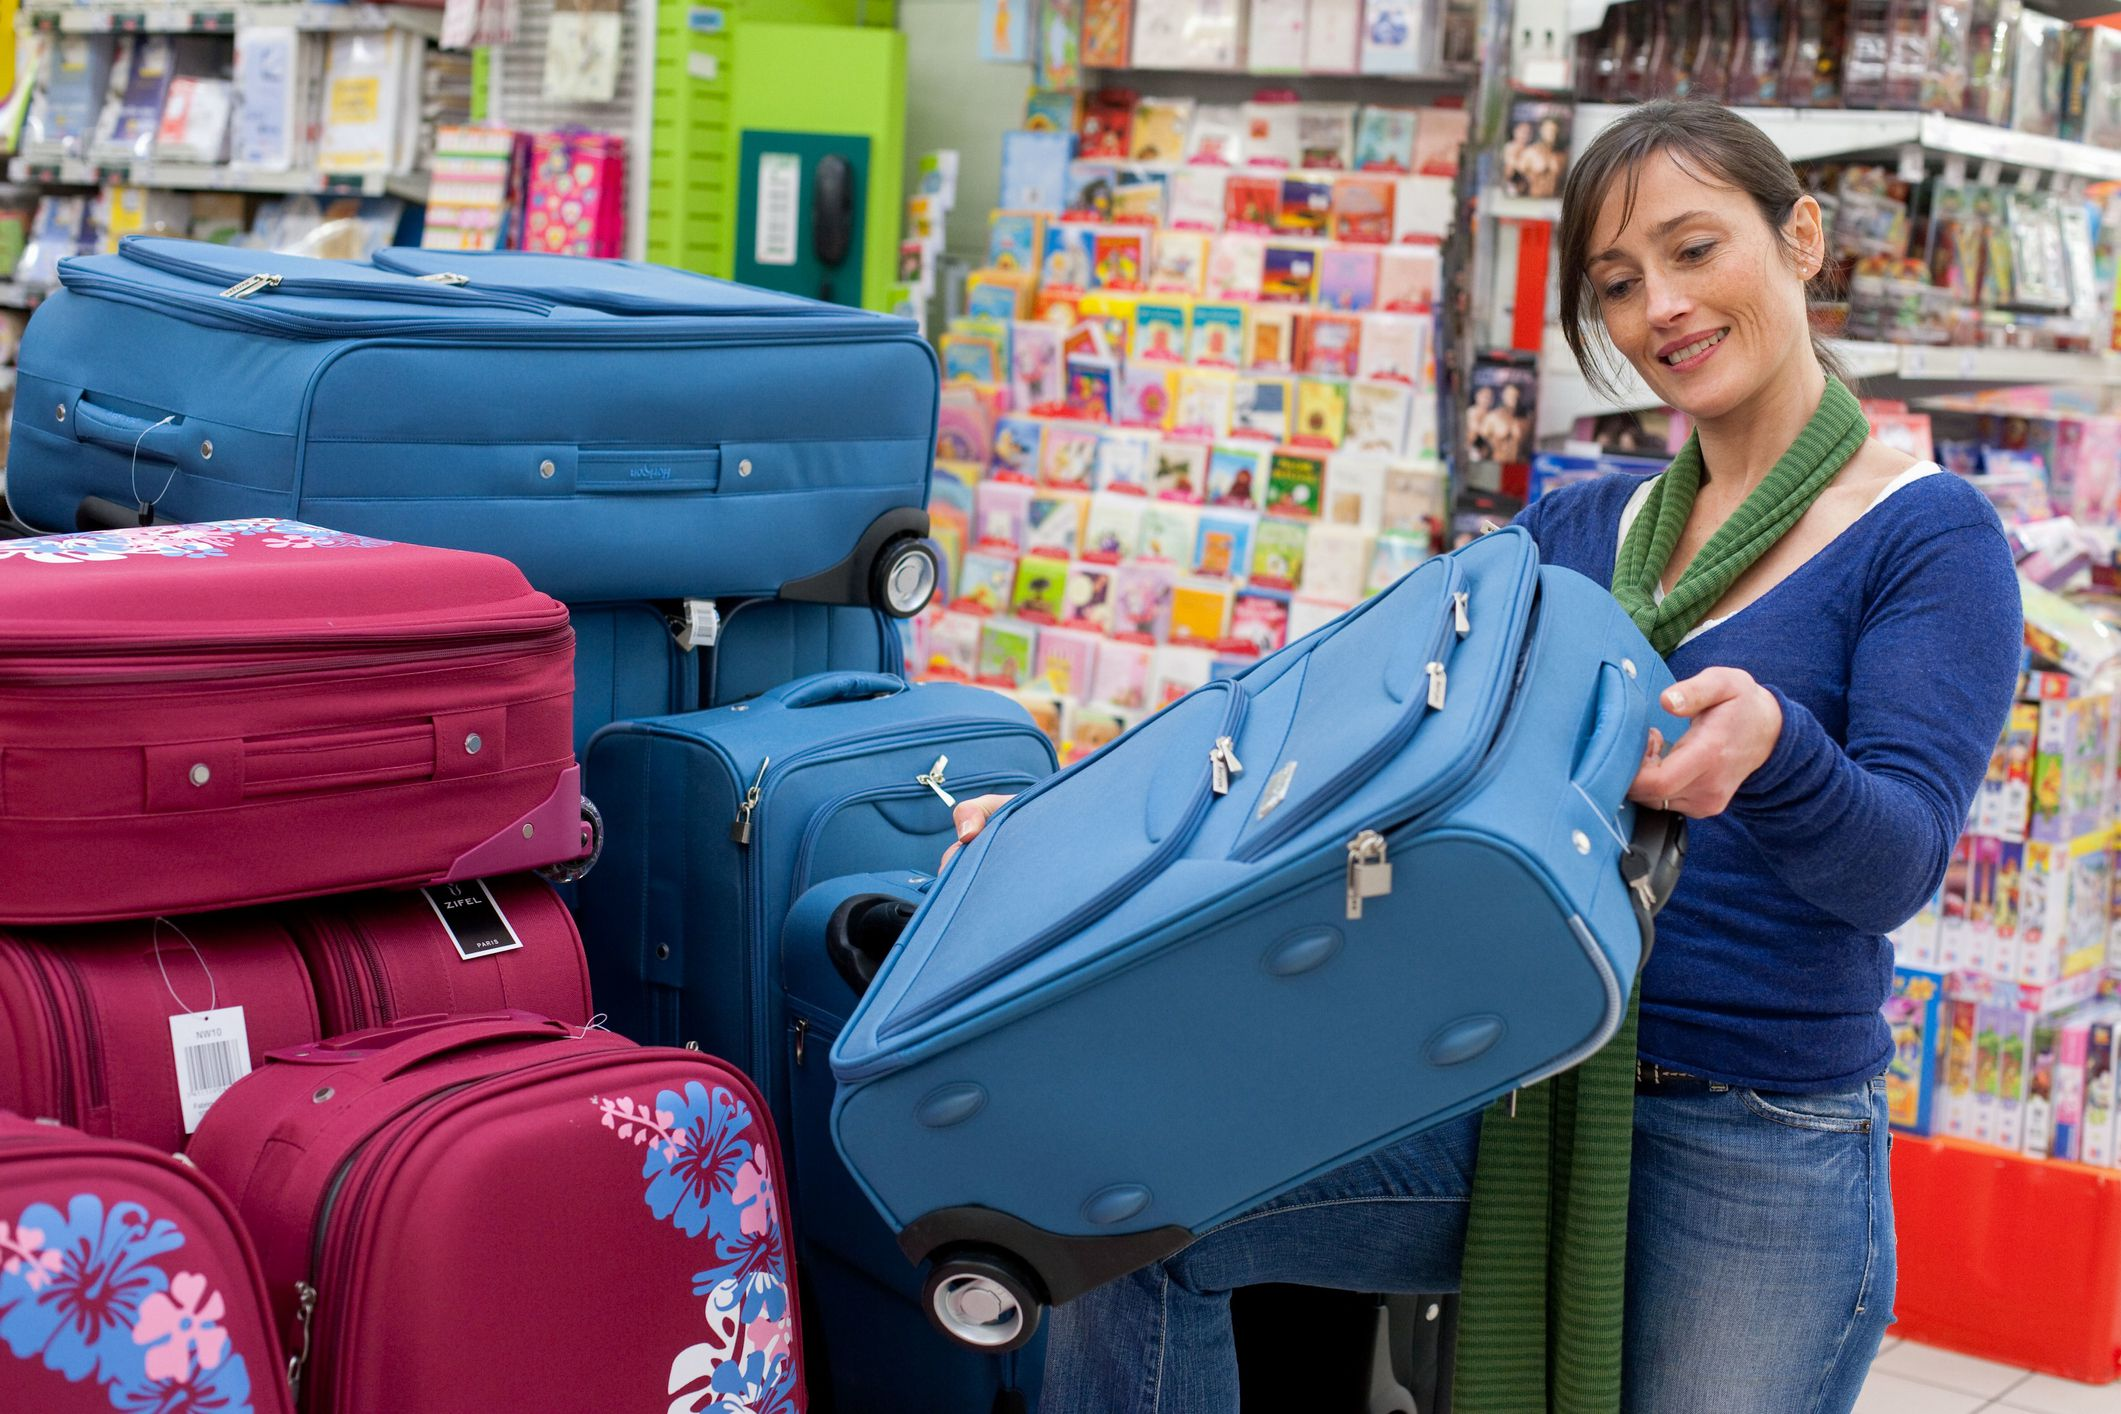 b2cb922fdc3 The 8 Best Places to Buy Luggage in 2019